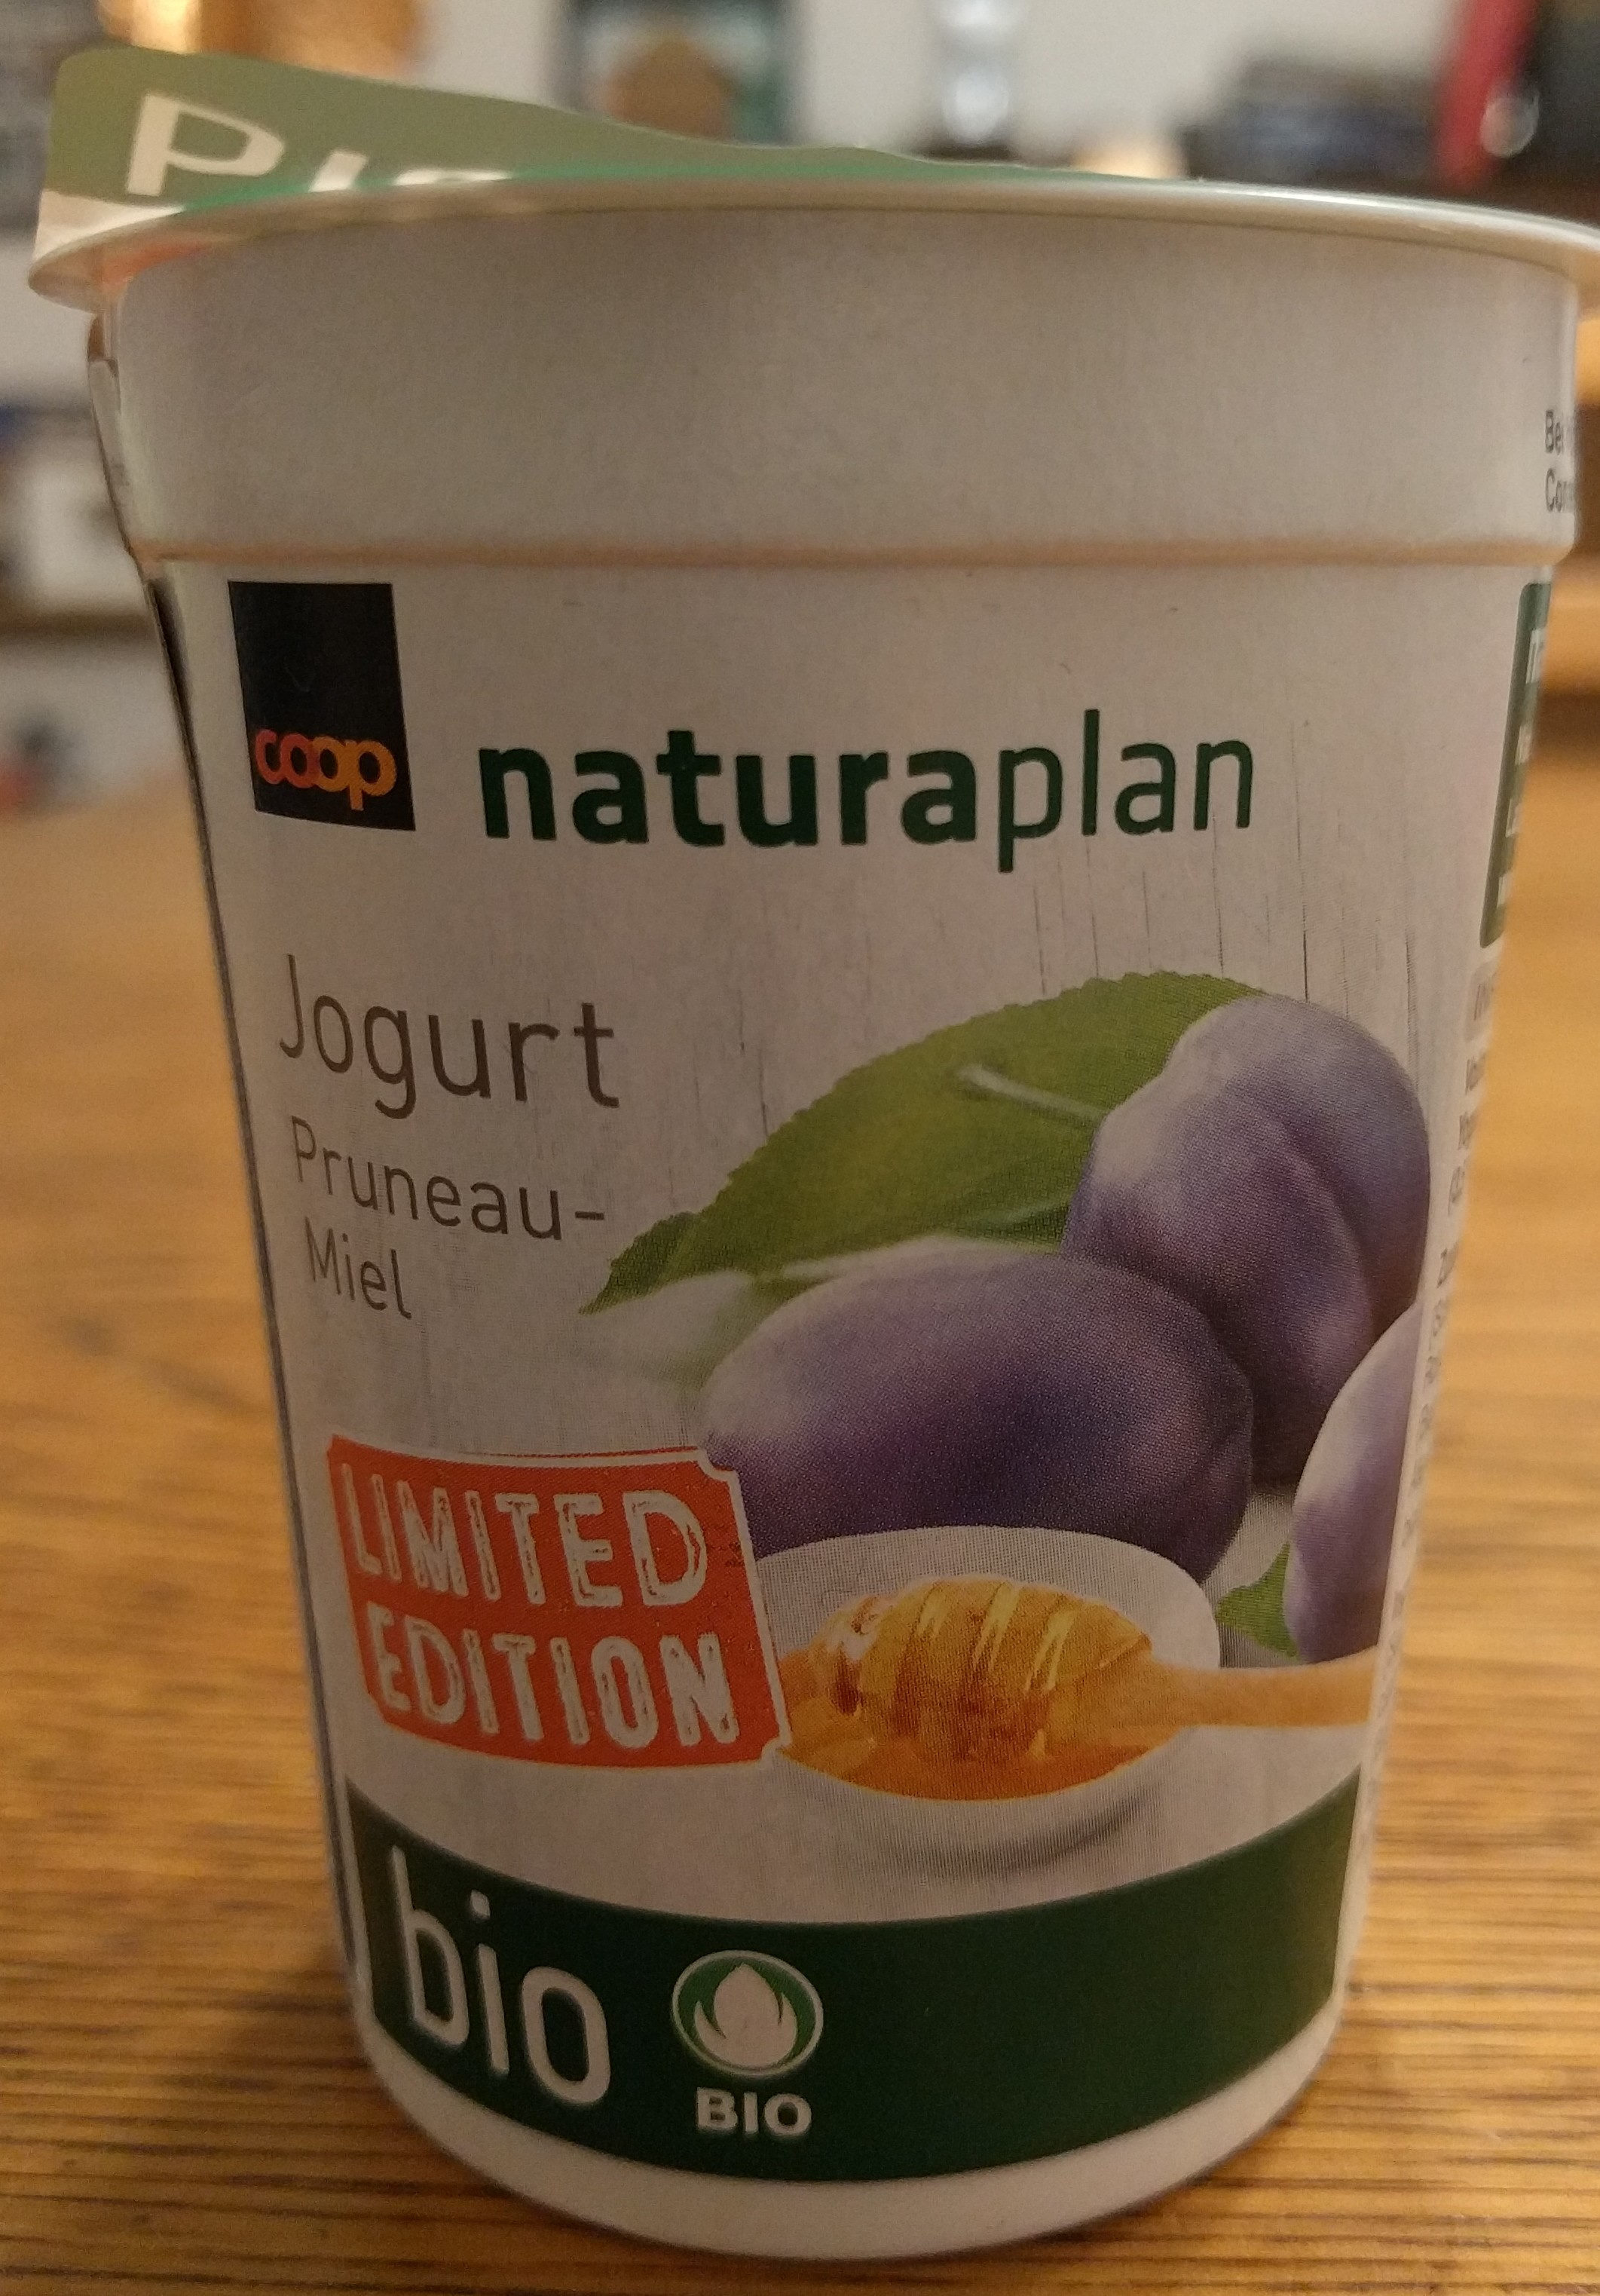 Jogurt Pruneau-Miel - Product